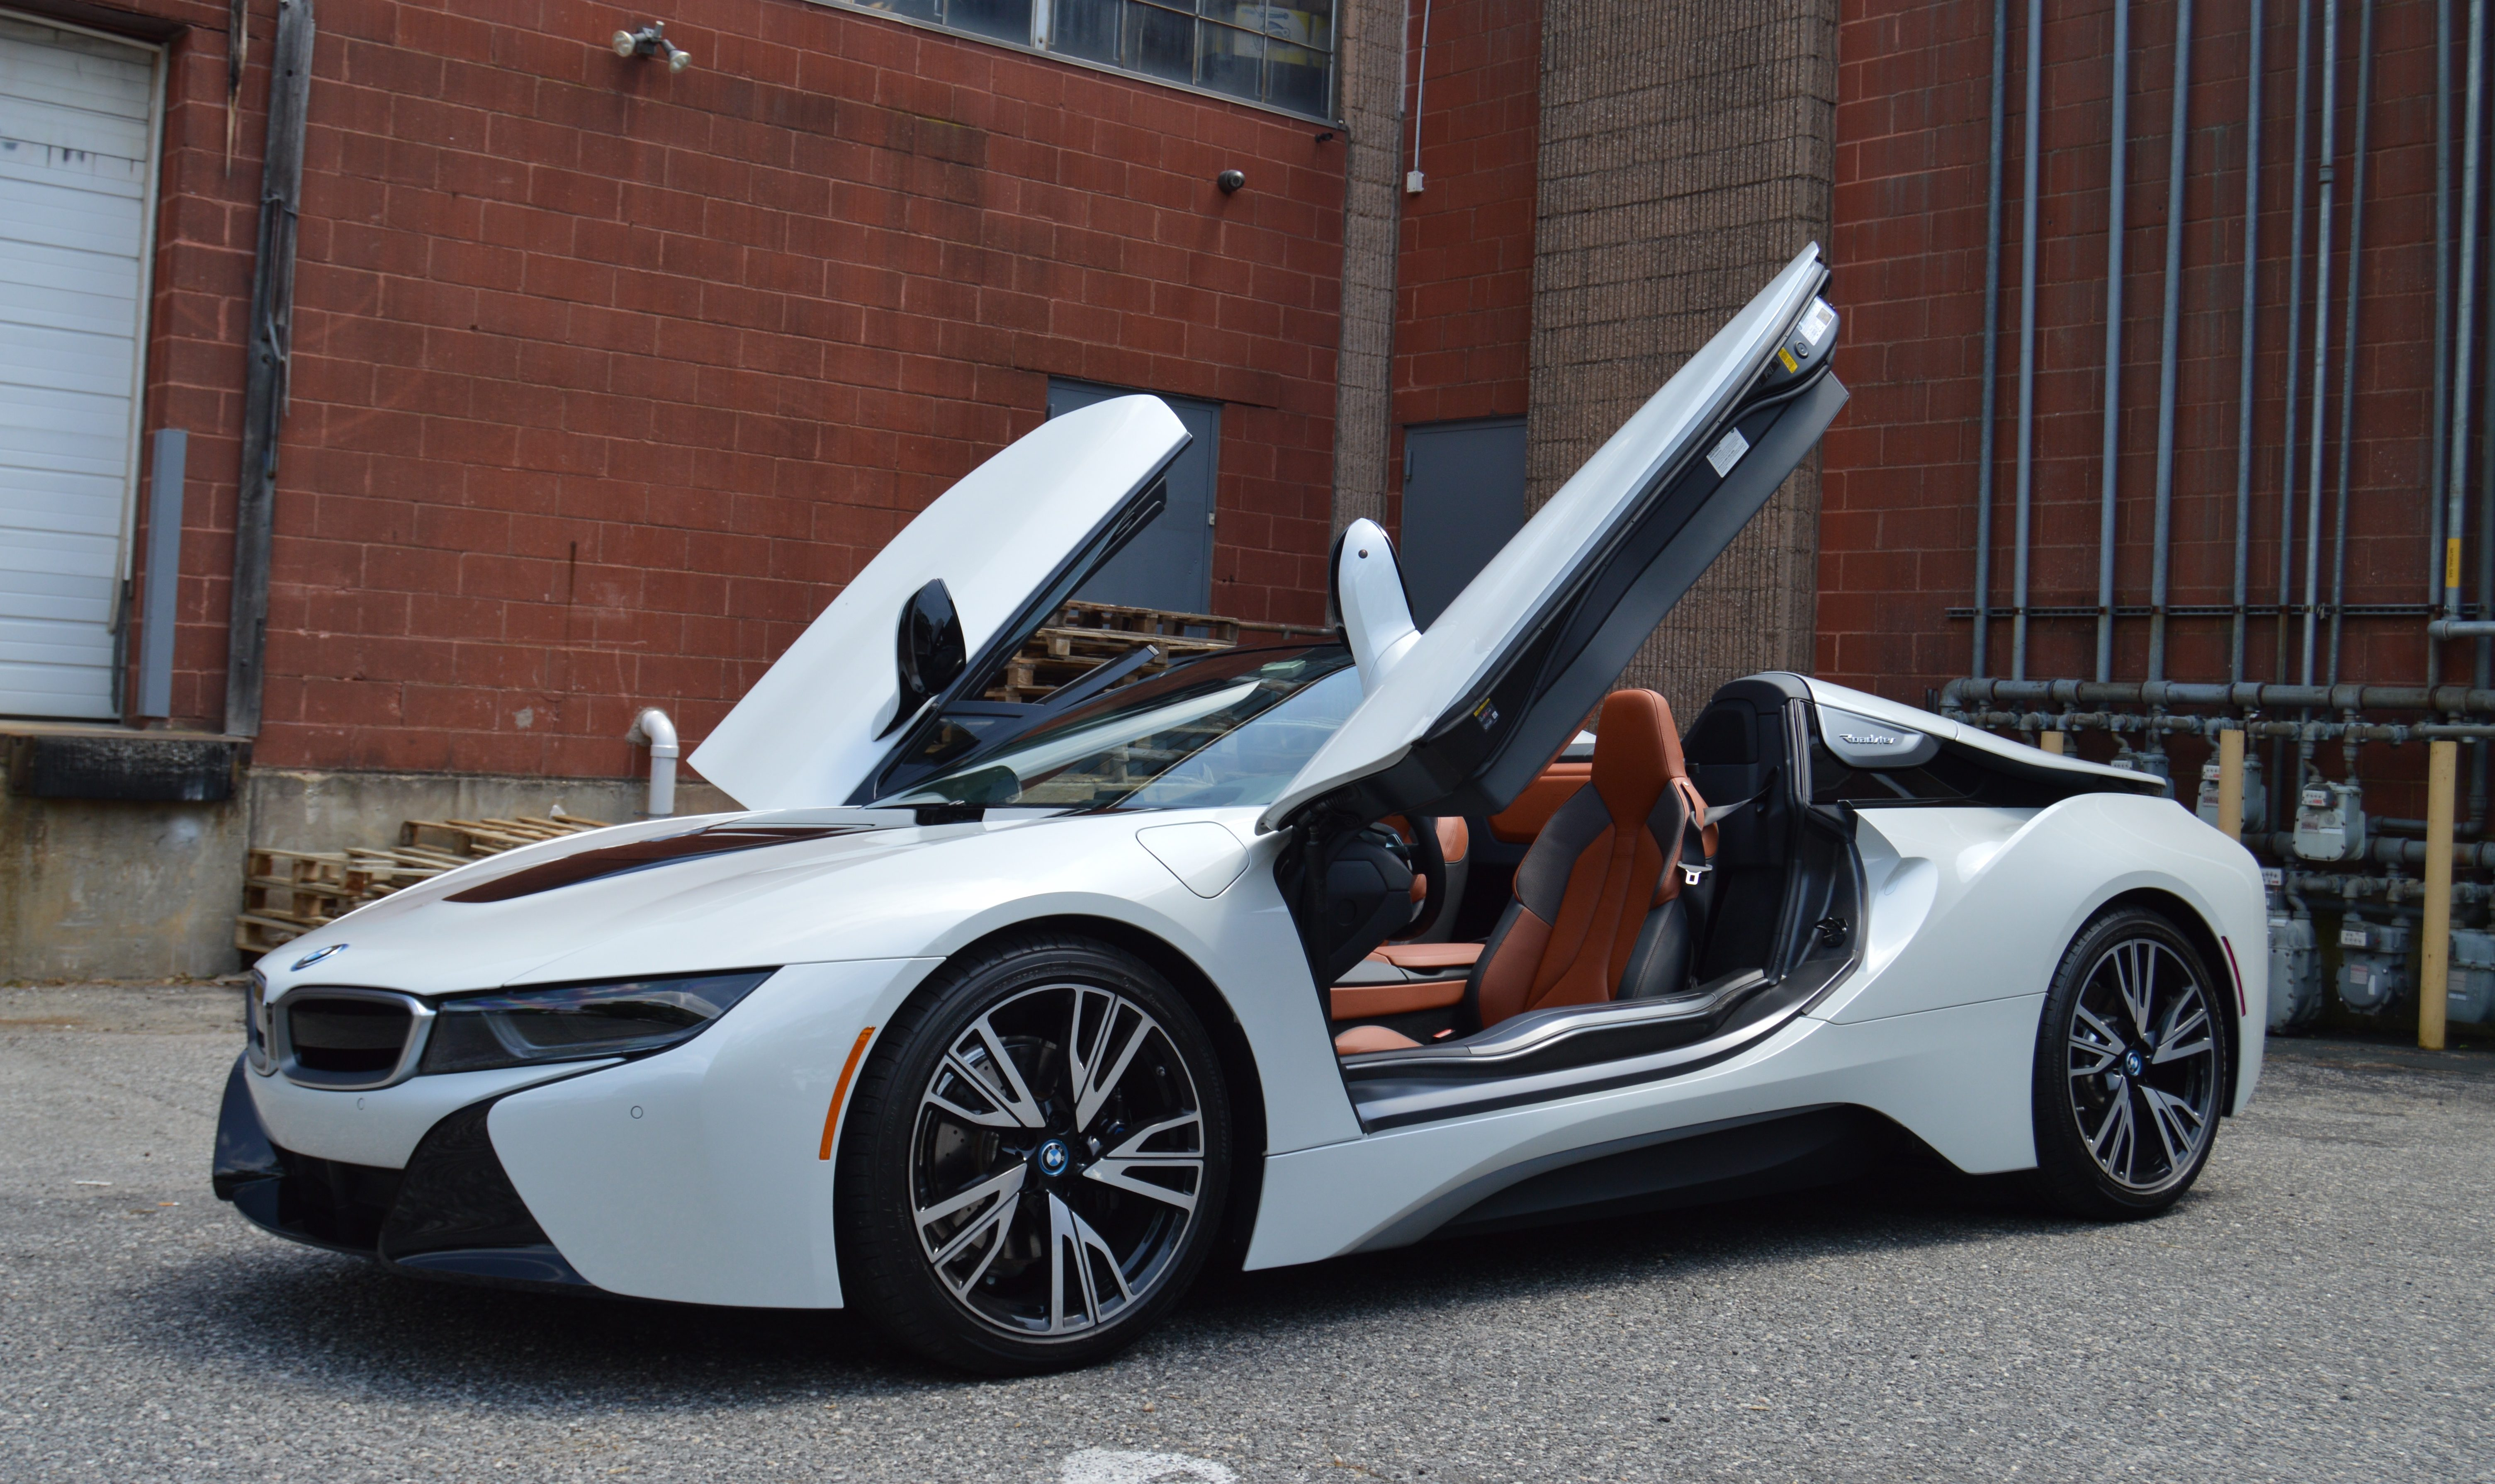 BMW I8 Rental >> BMW i8 Roadster | Hourly, Daily & Monthly Rentals | Cloud 9 Exotics